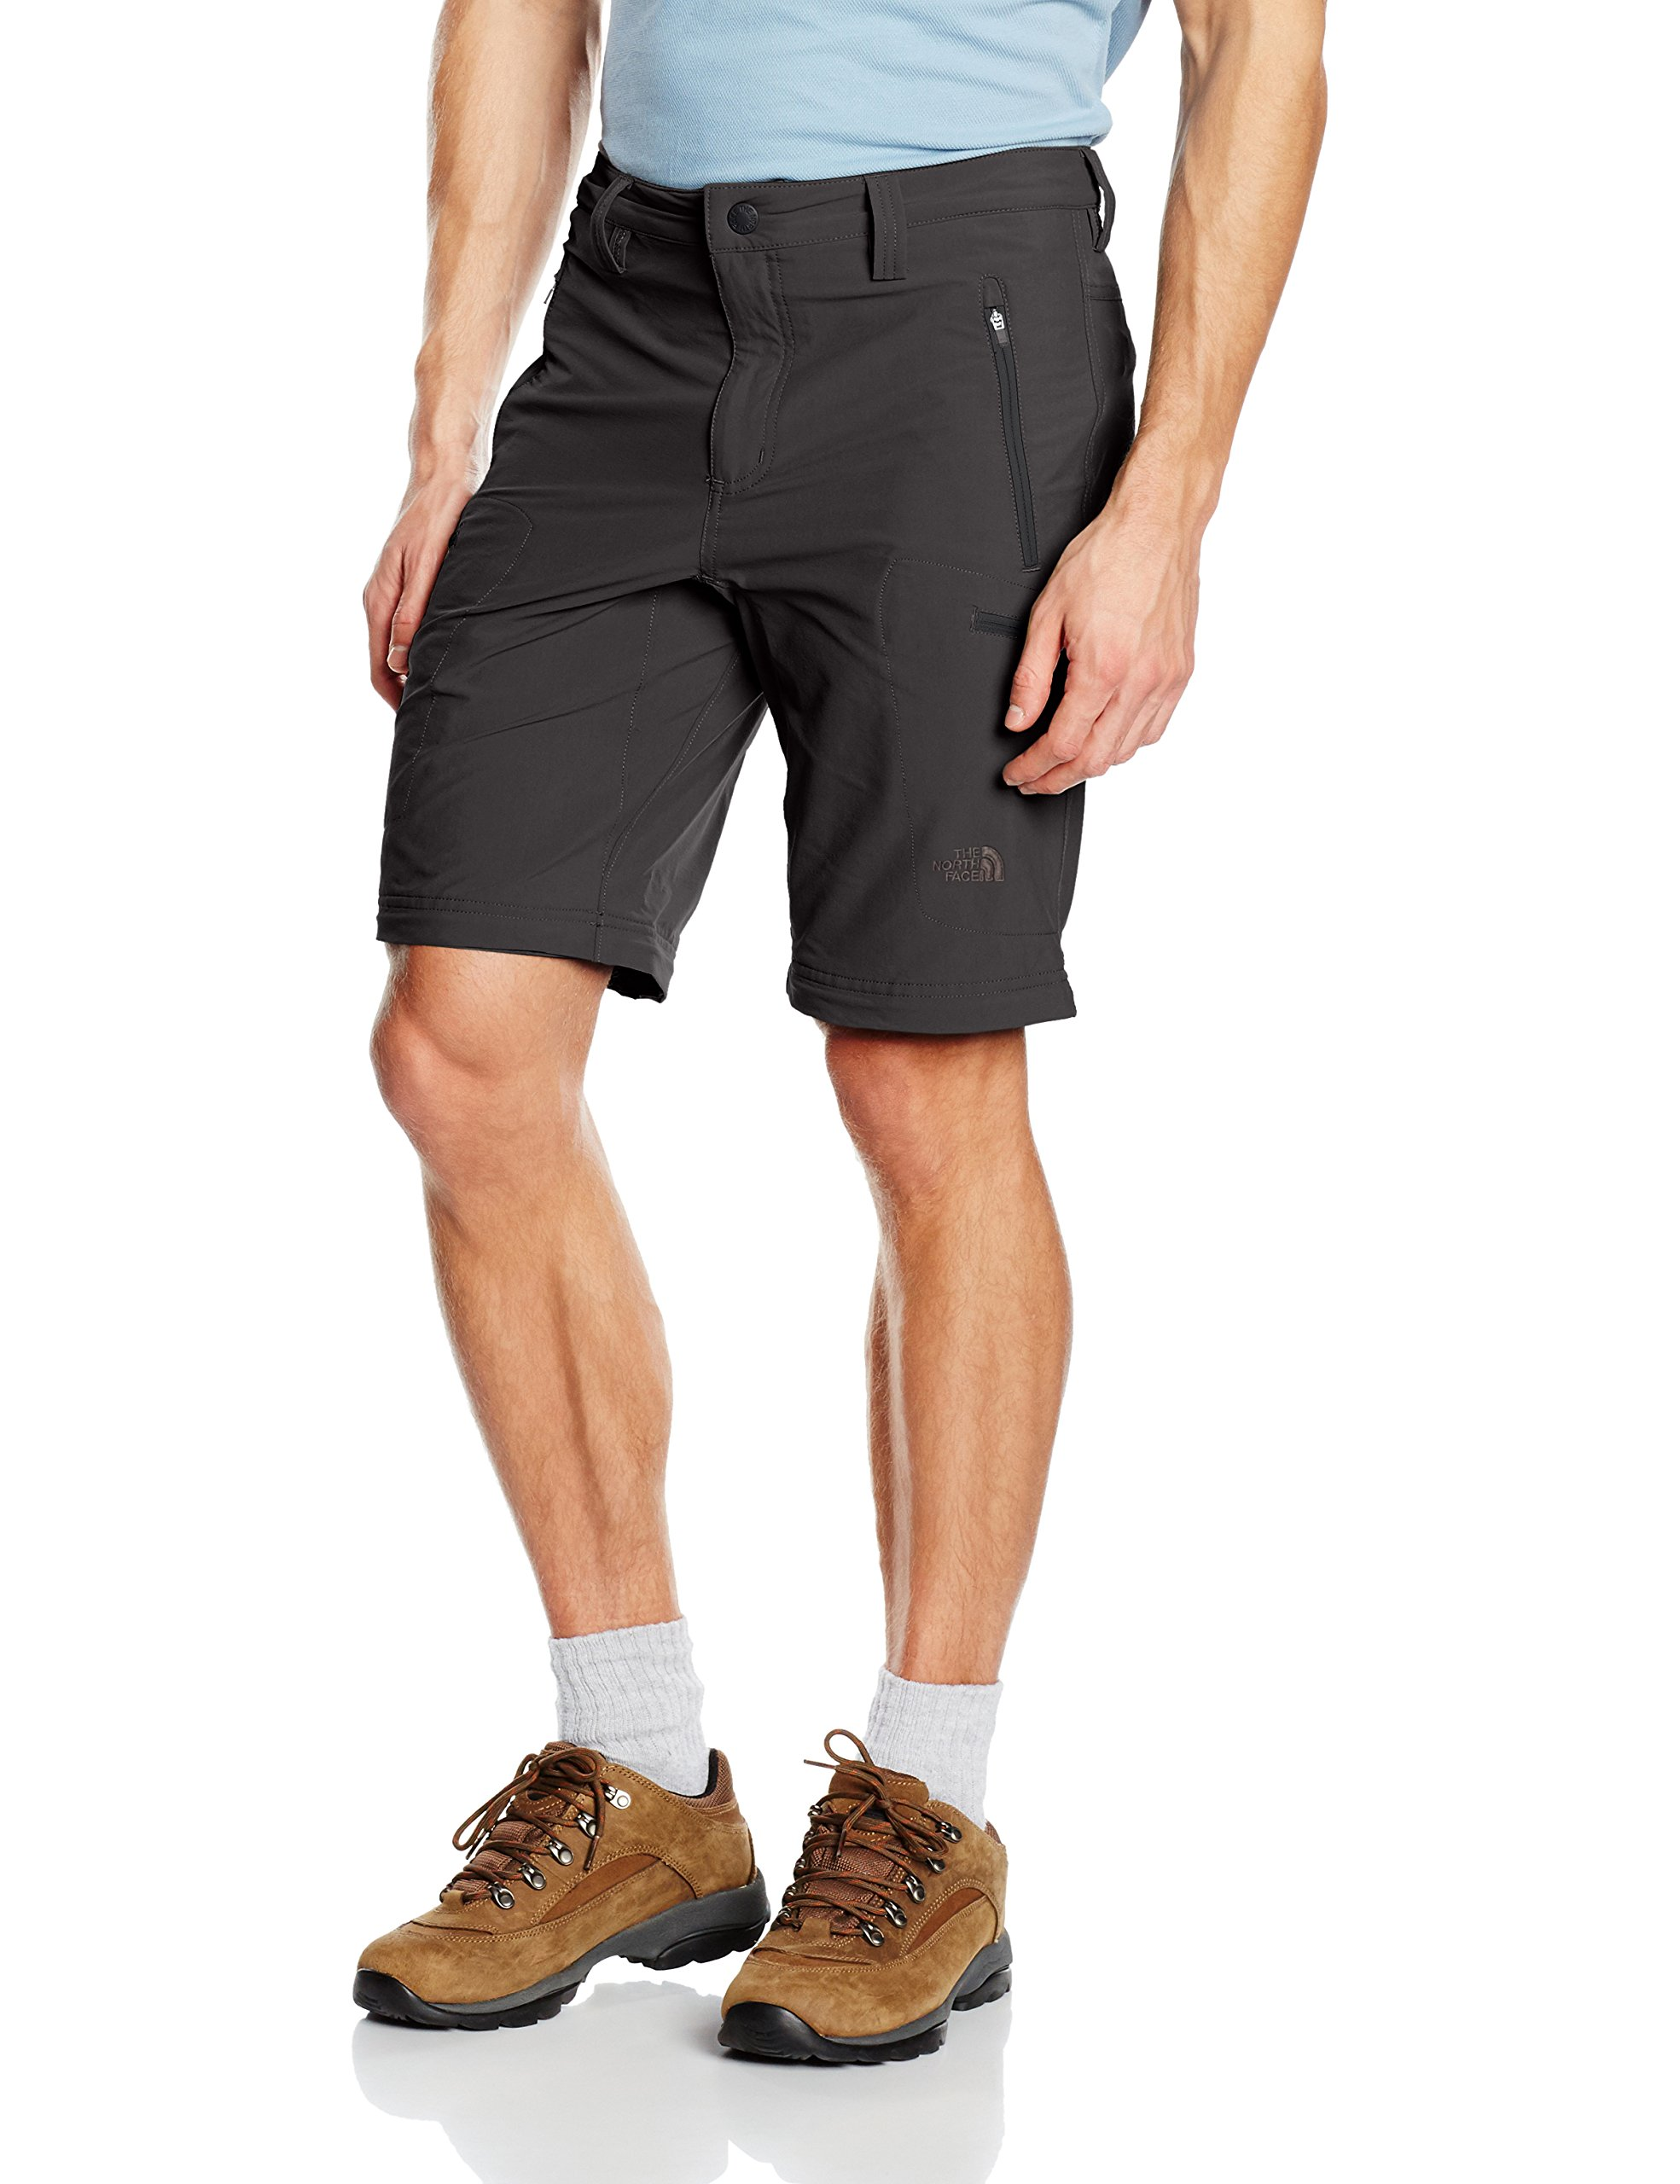 81pF7F790WL - The North Face Men's Convertible Hiking Exploration Outdoor Trouser